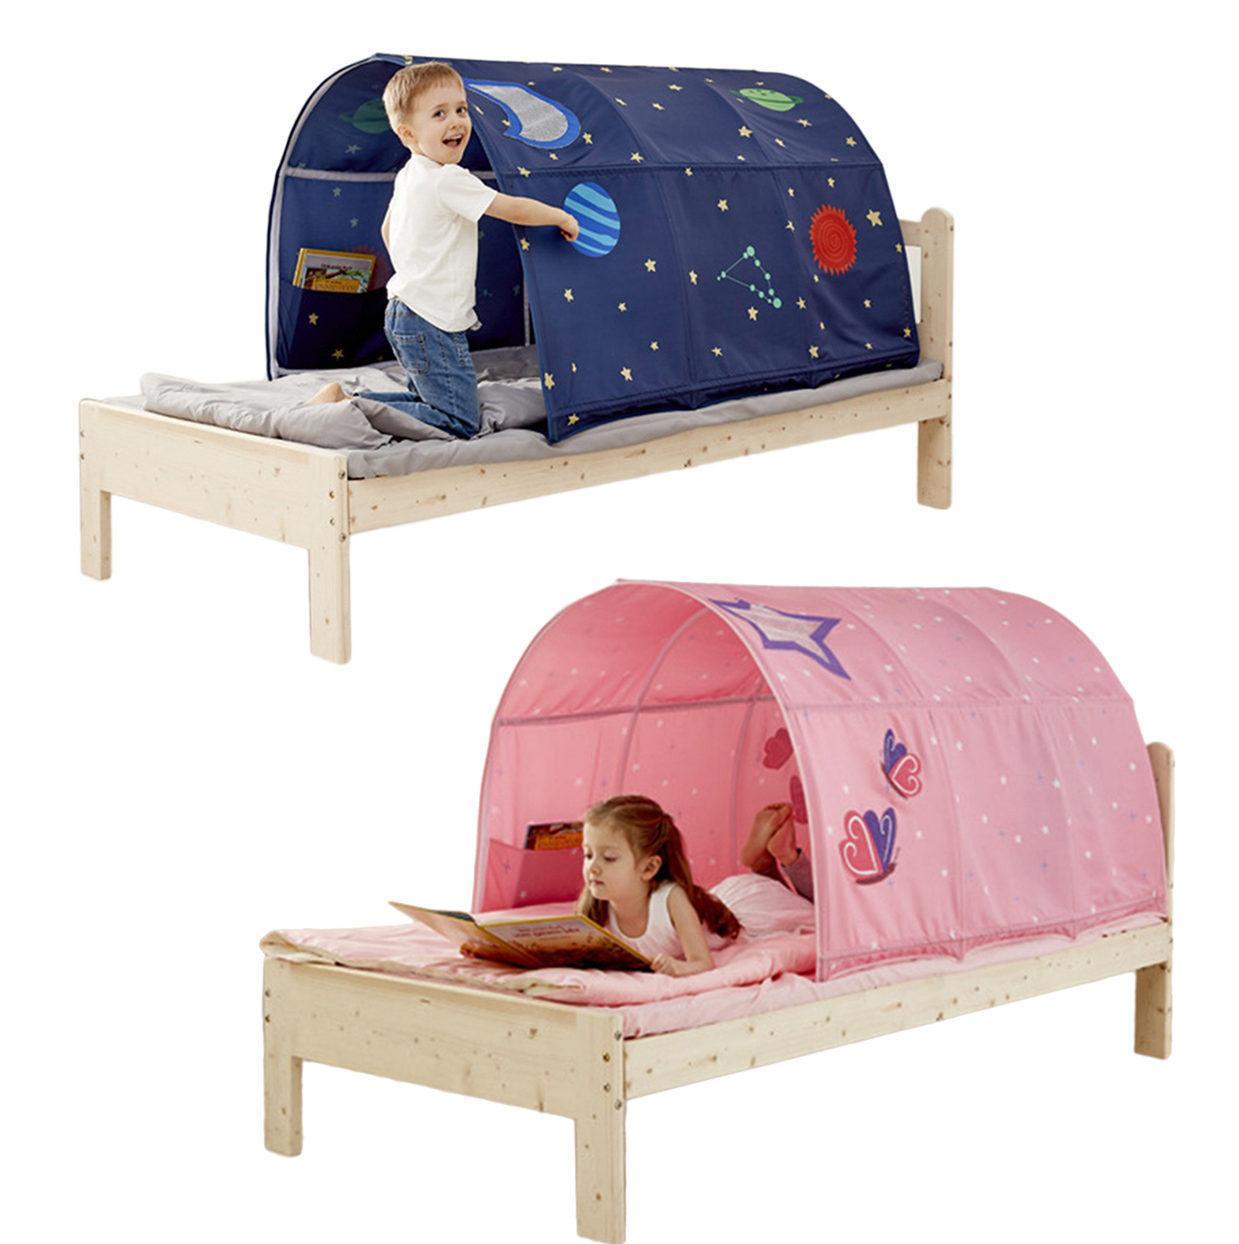 Superbe Baby Space Adventure Dream Tents Kids Bed Playhouse Folding ...